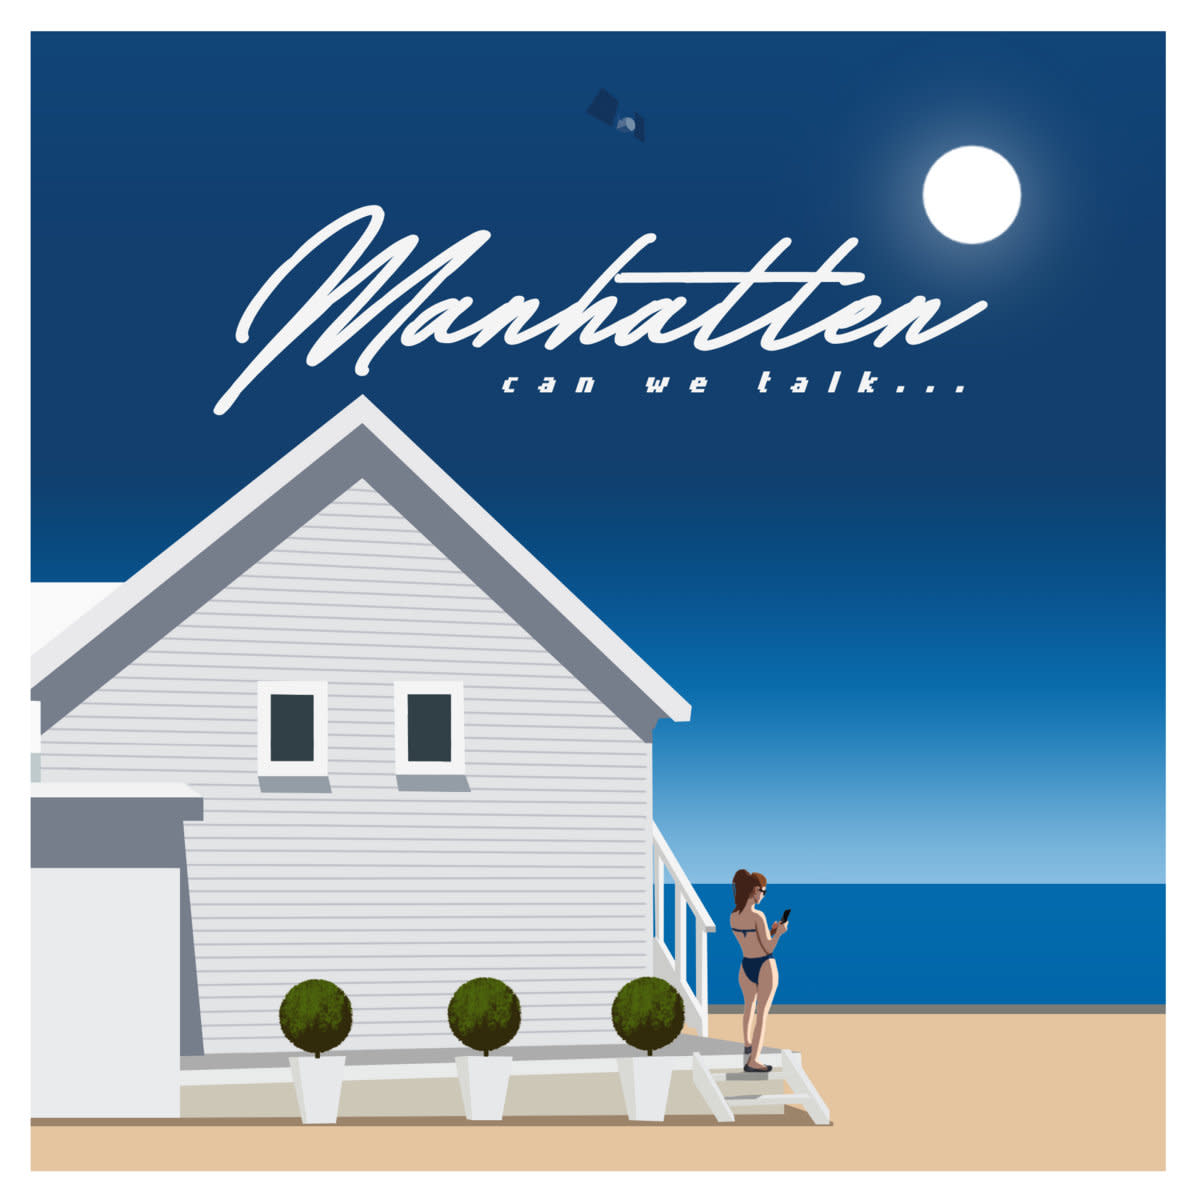 synth-album-review-can-we-talk-by-manhatten